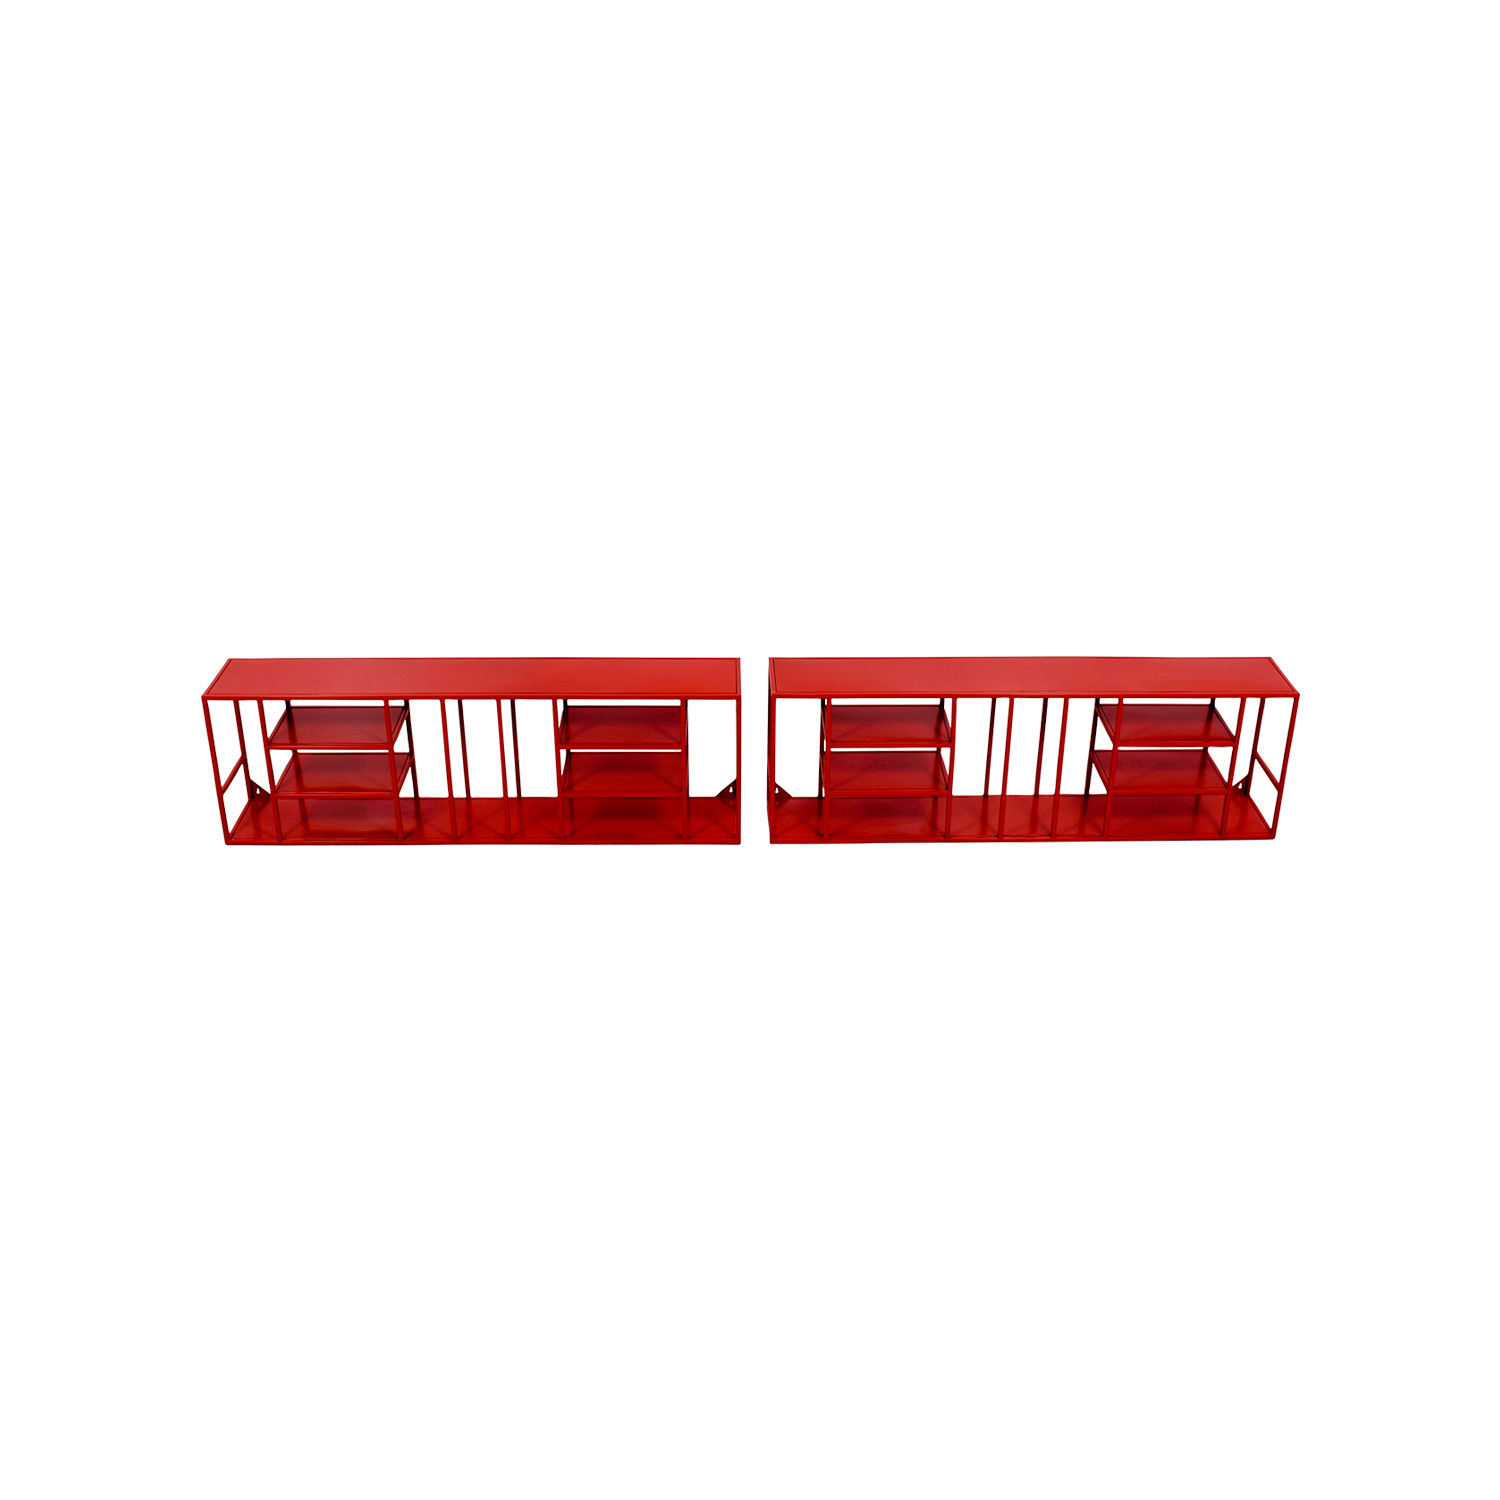 CB2 Red Metal Bookshelves / Storage